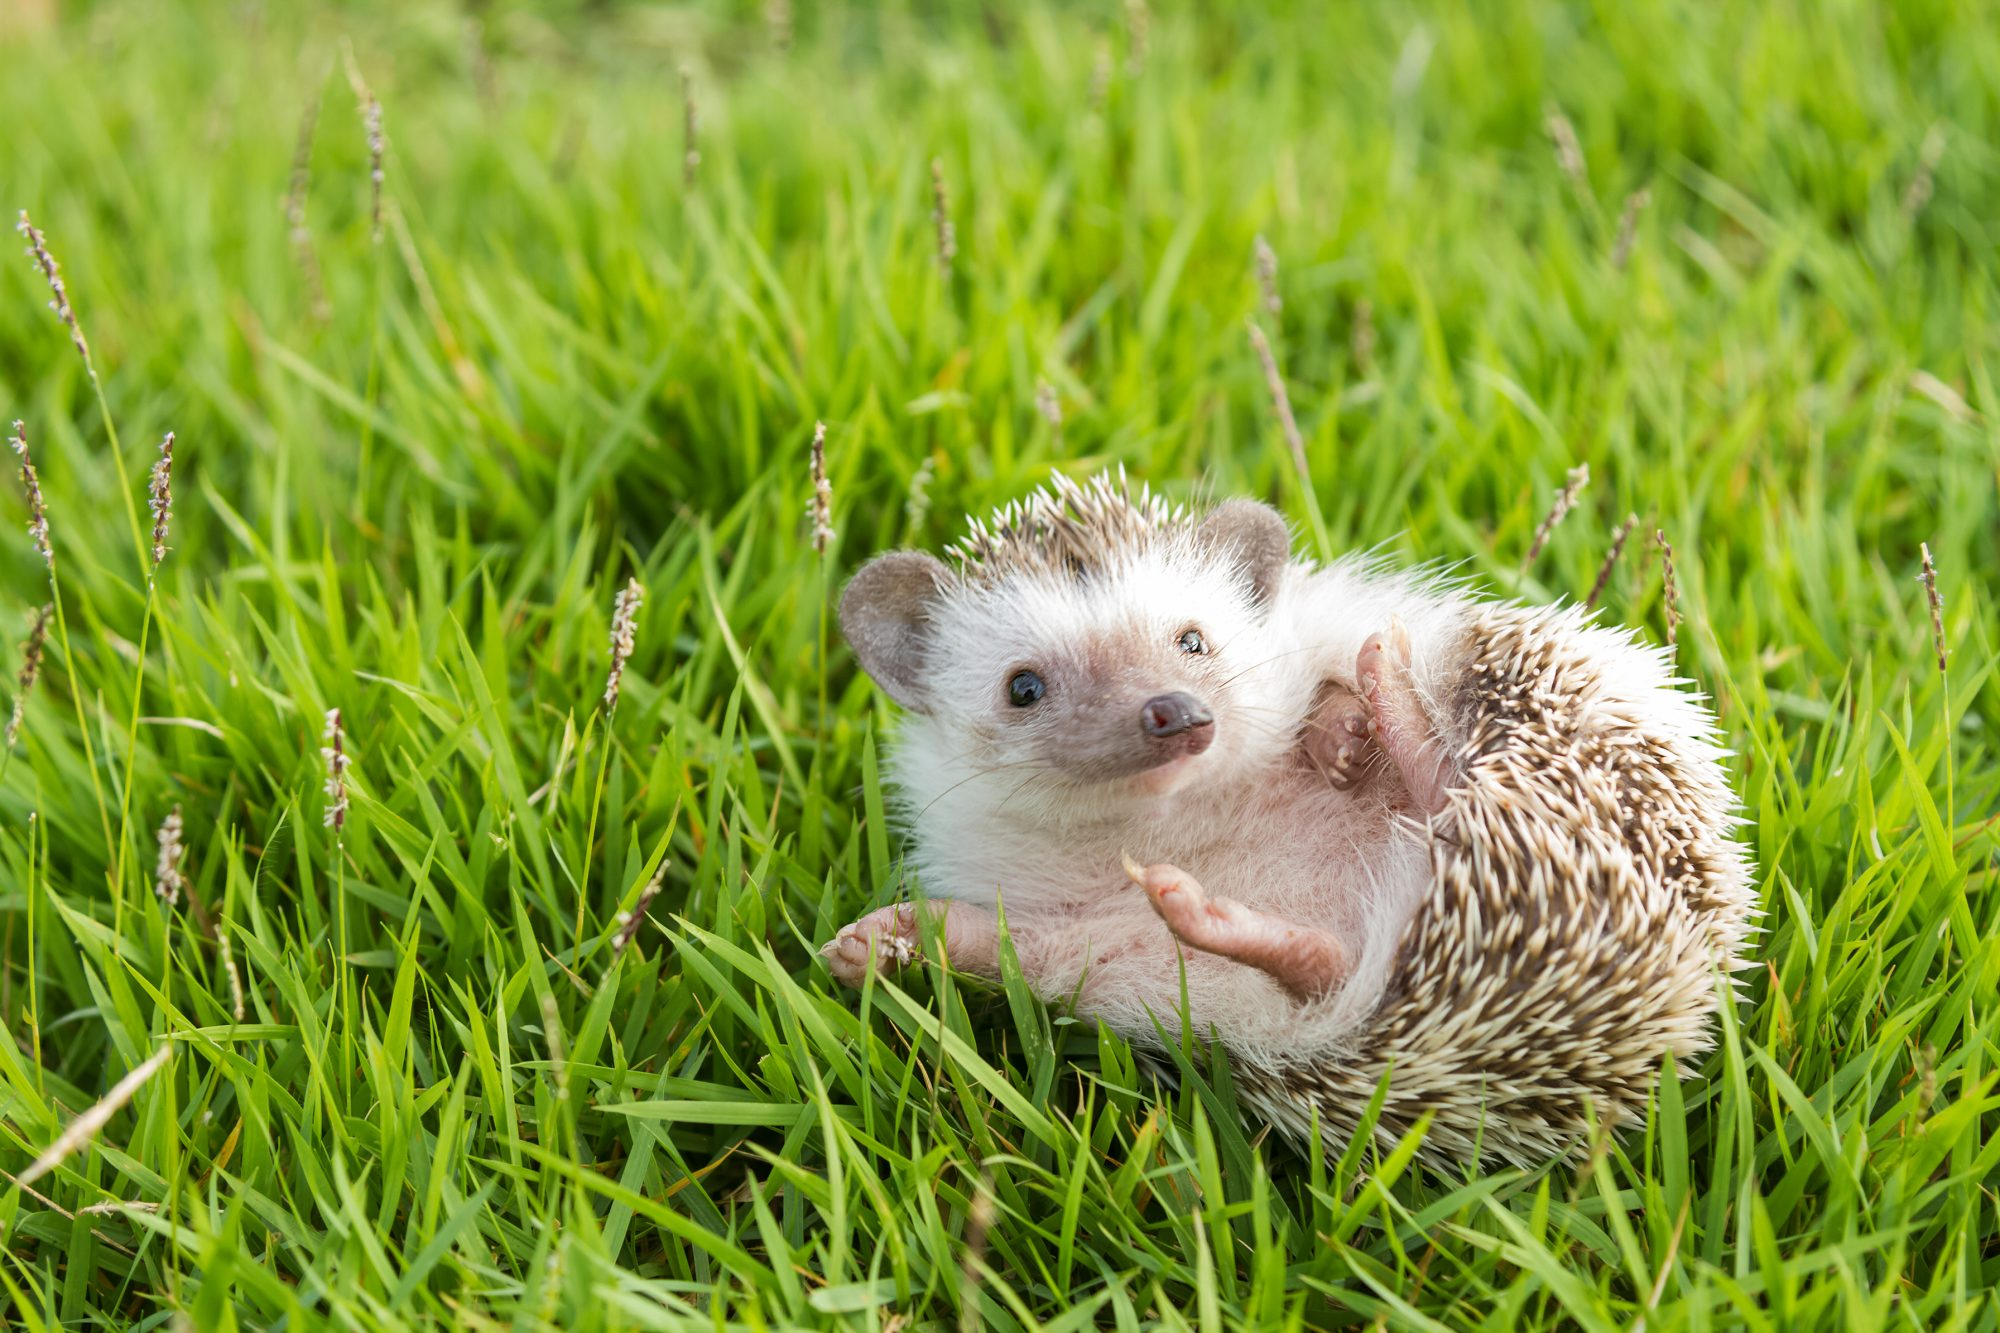 These Hedgehogs, Goats and French Bulldog Puppies Have an Important Message About Your Health